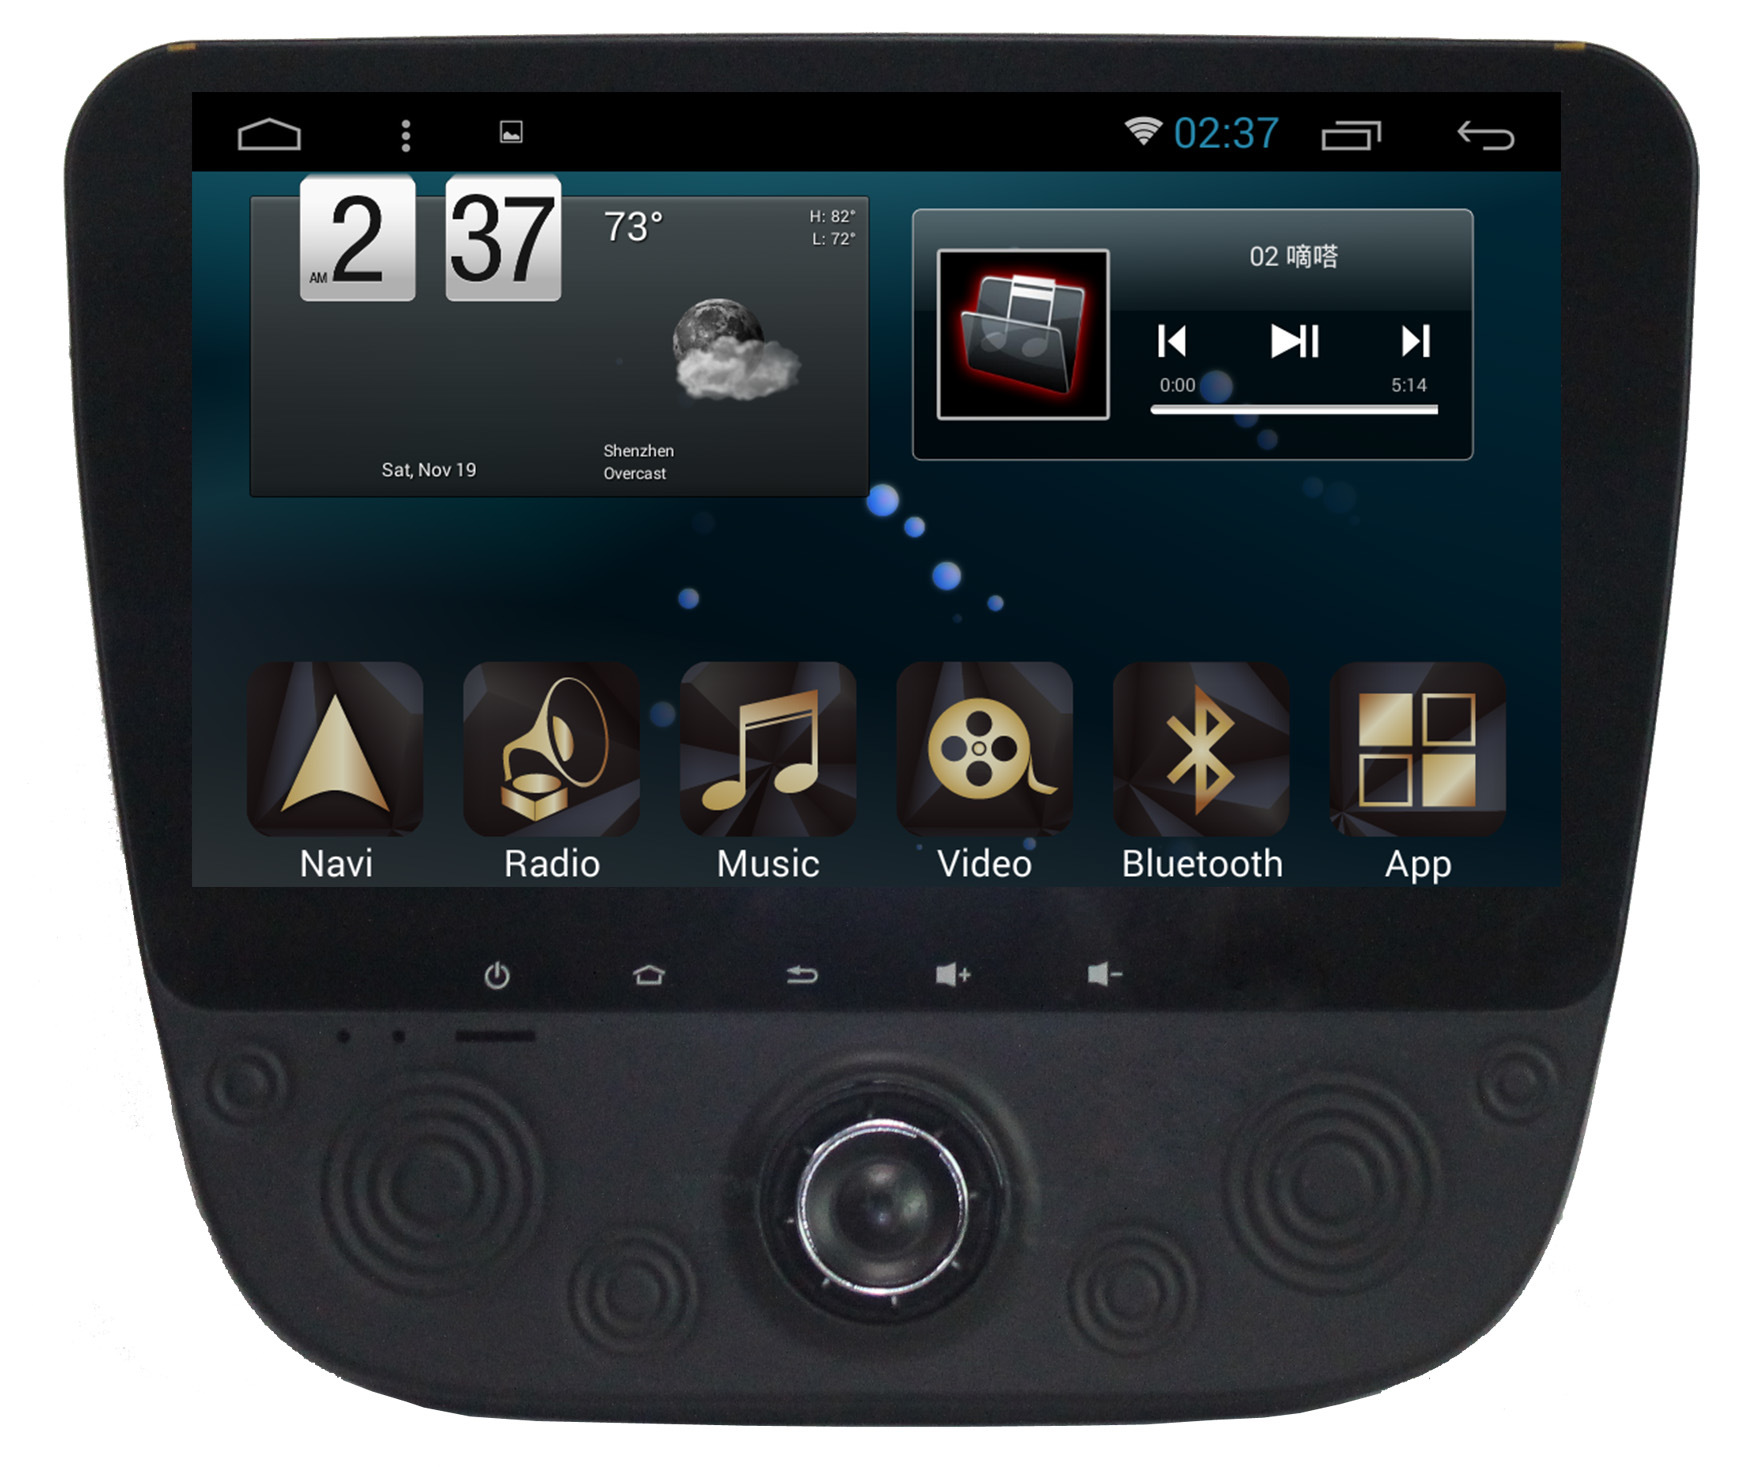 New Ui Android System Car Video for Malibu XL 2015 with Car GPS Navigation